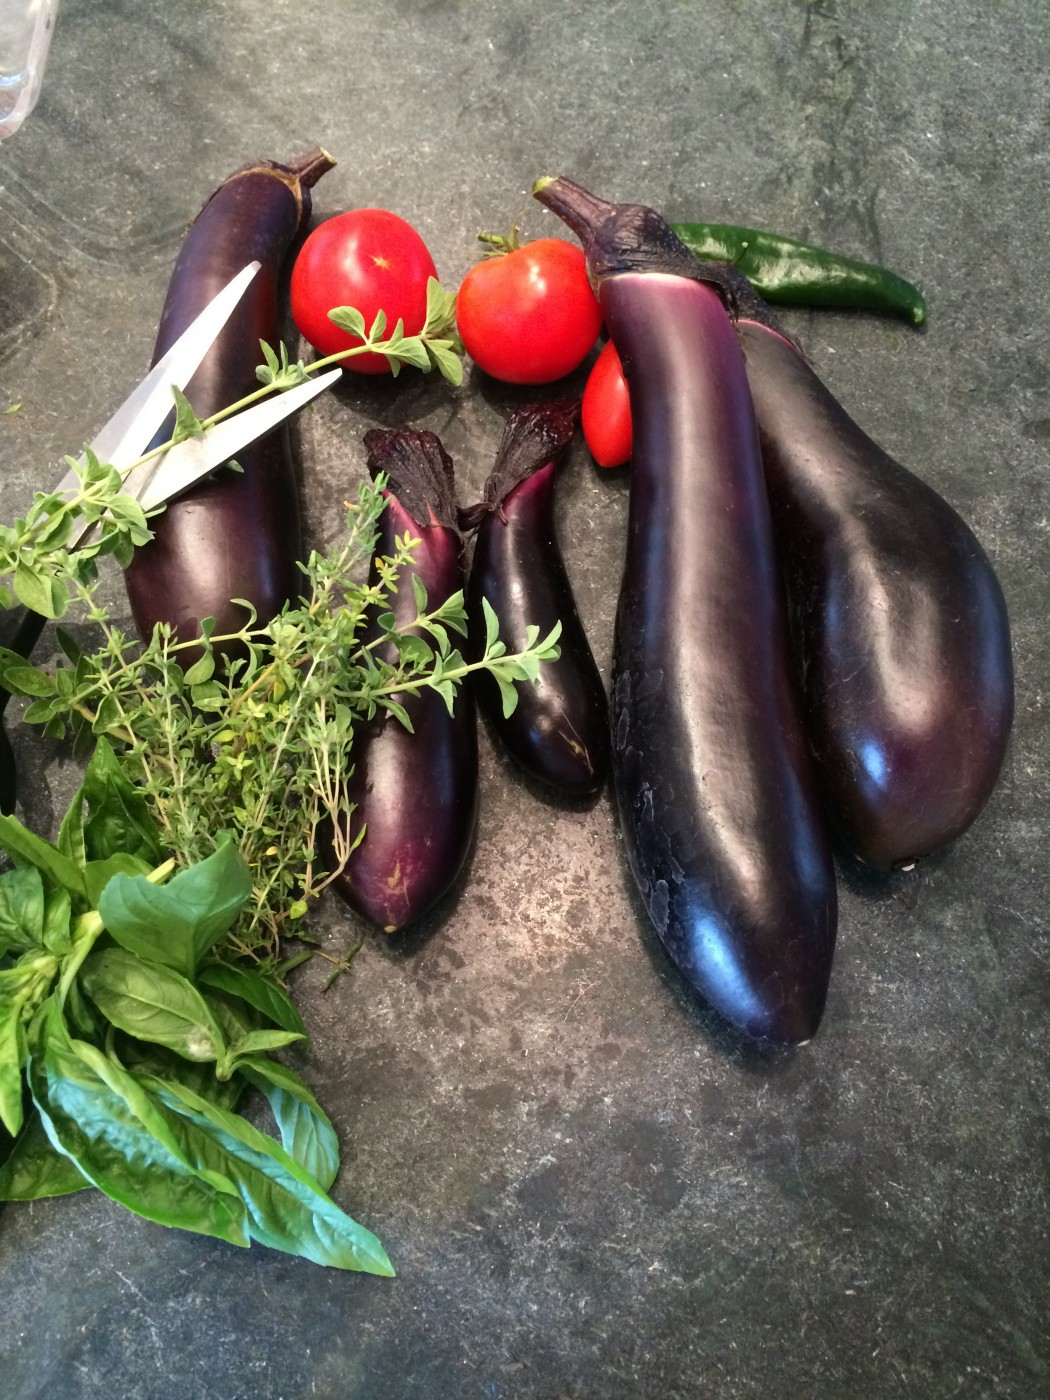 Eggplant from the garden